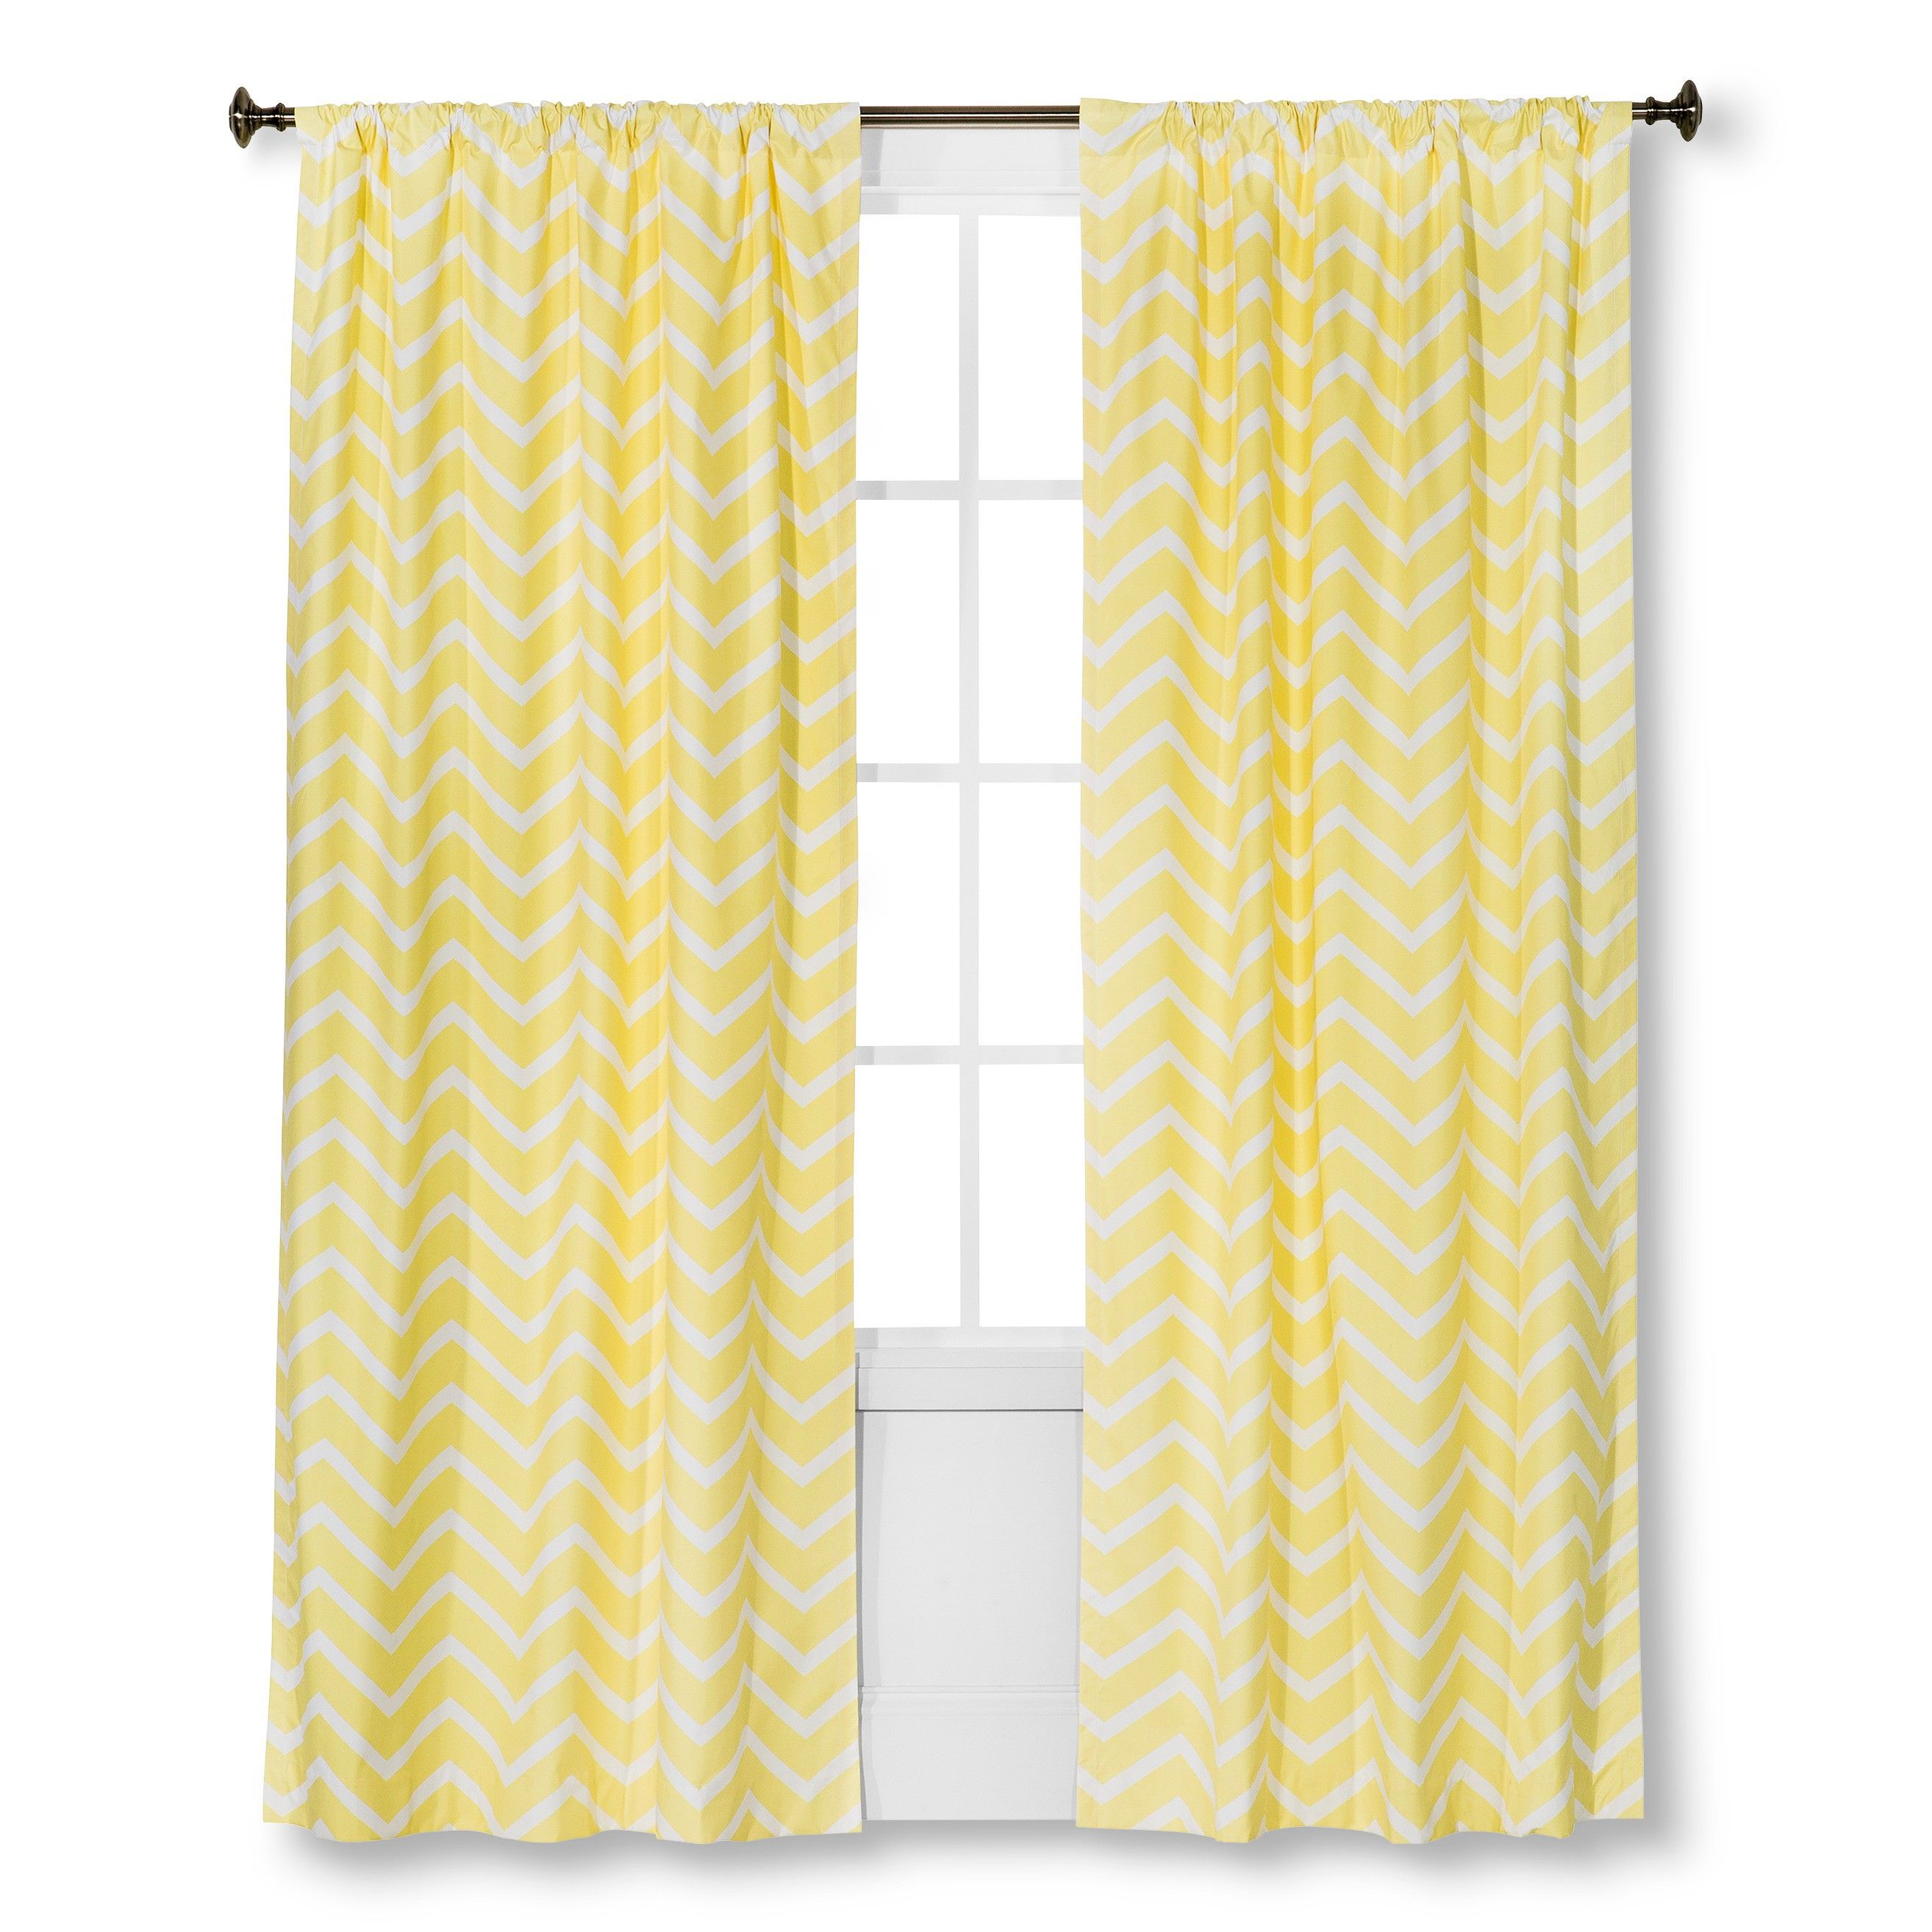 Circo™ Curtain Panel Chevron Print : Target